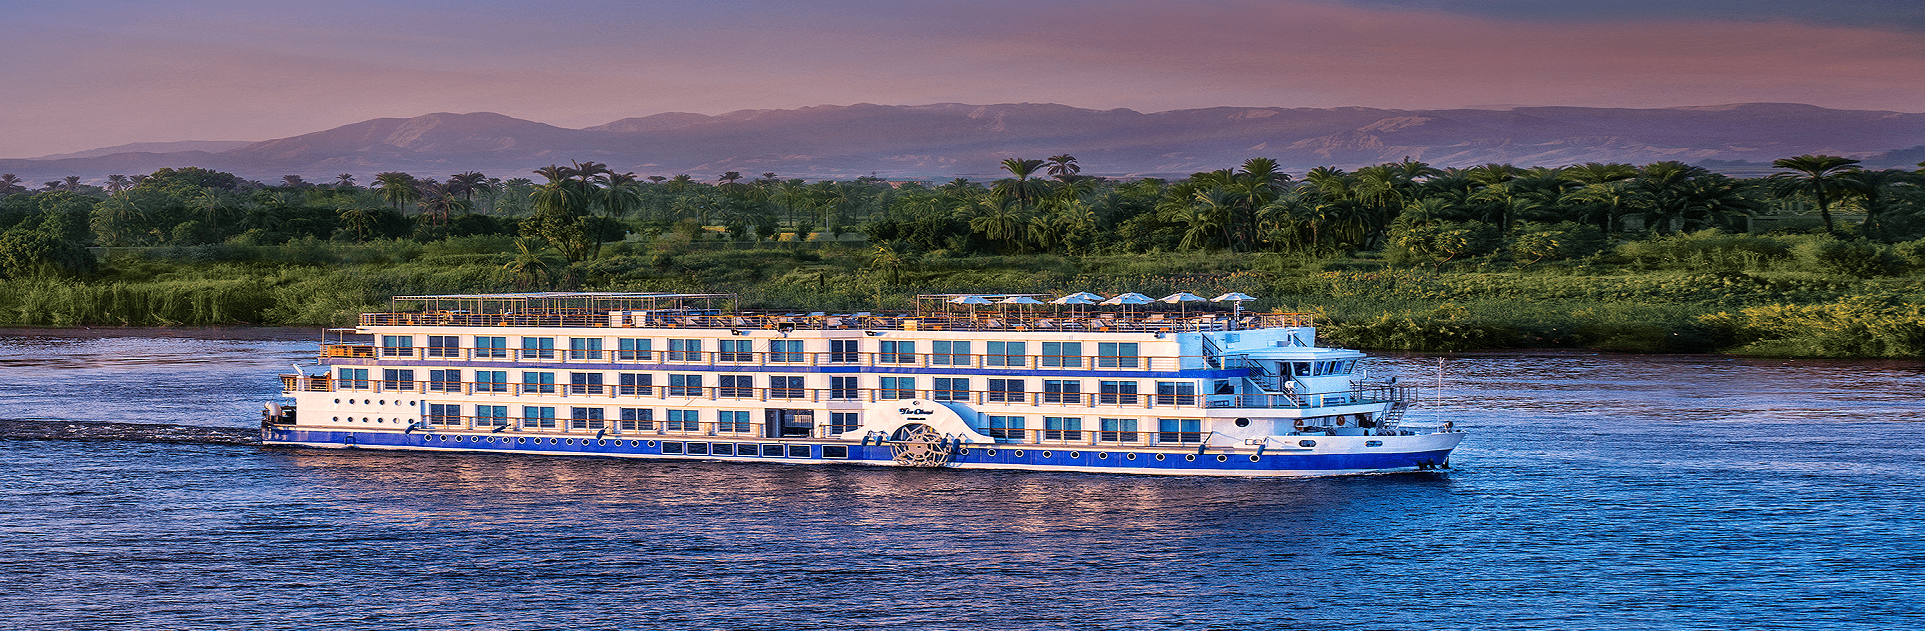 Easter Nile Cruise with Misr Travel